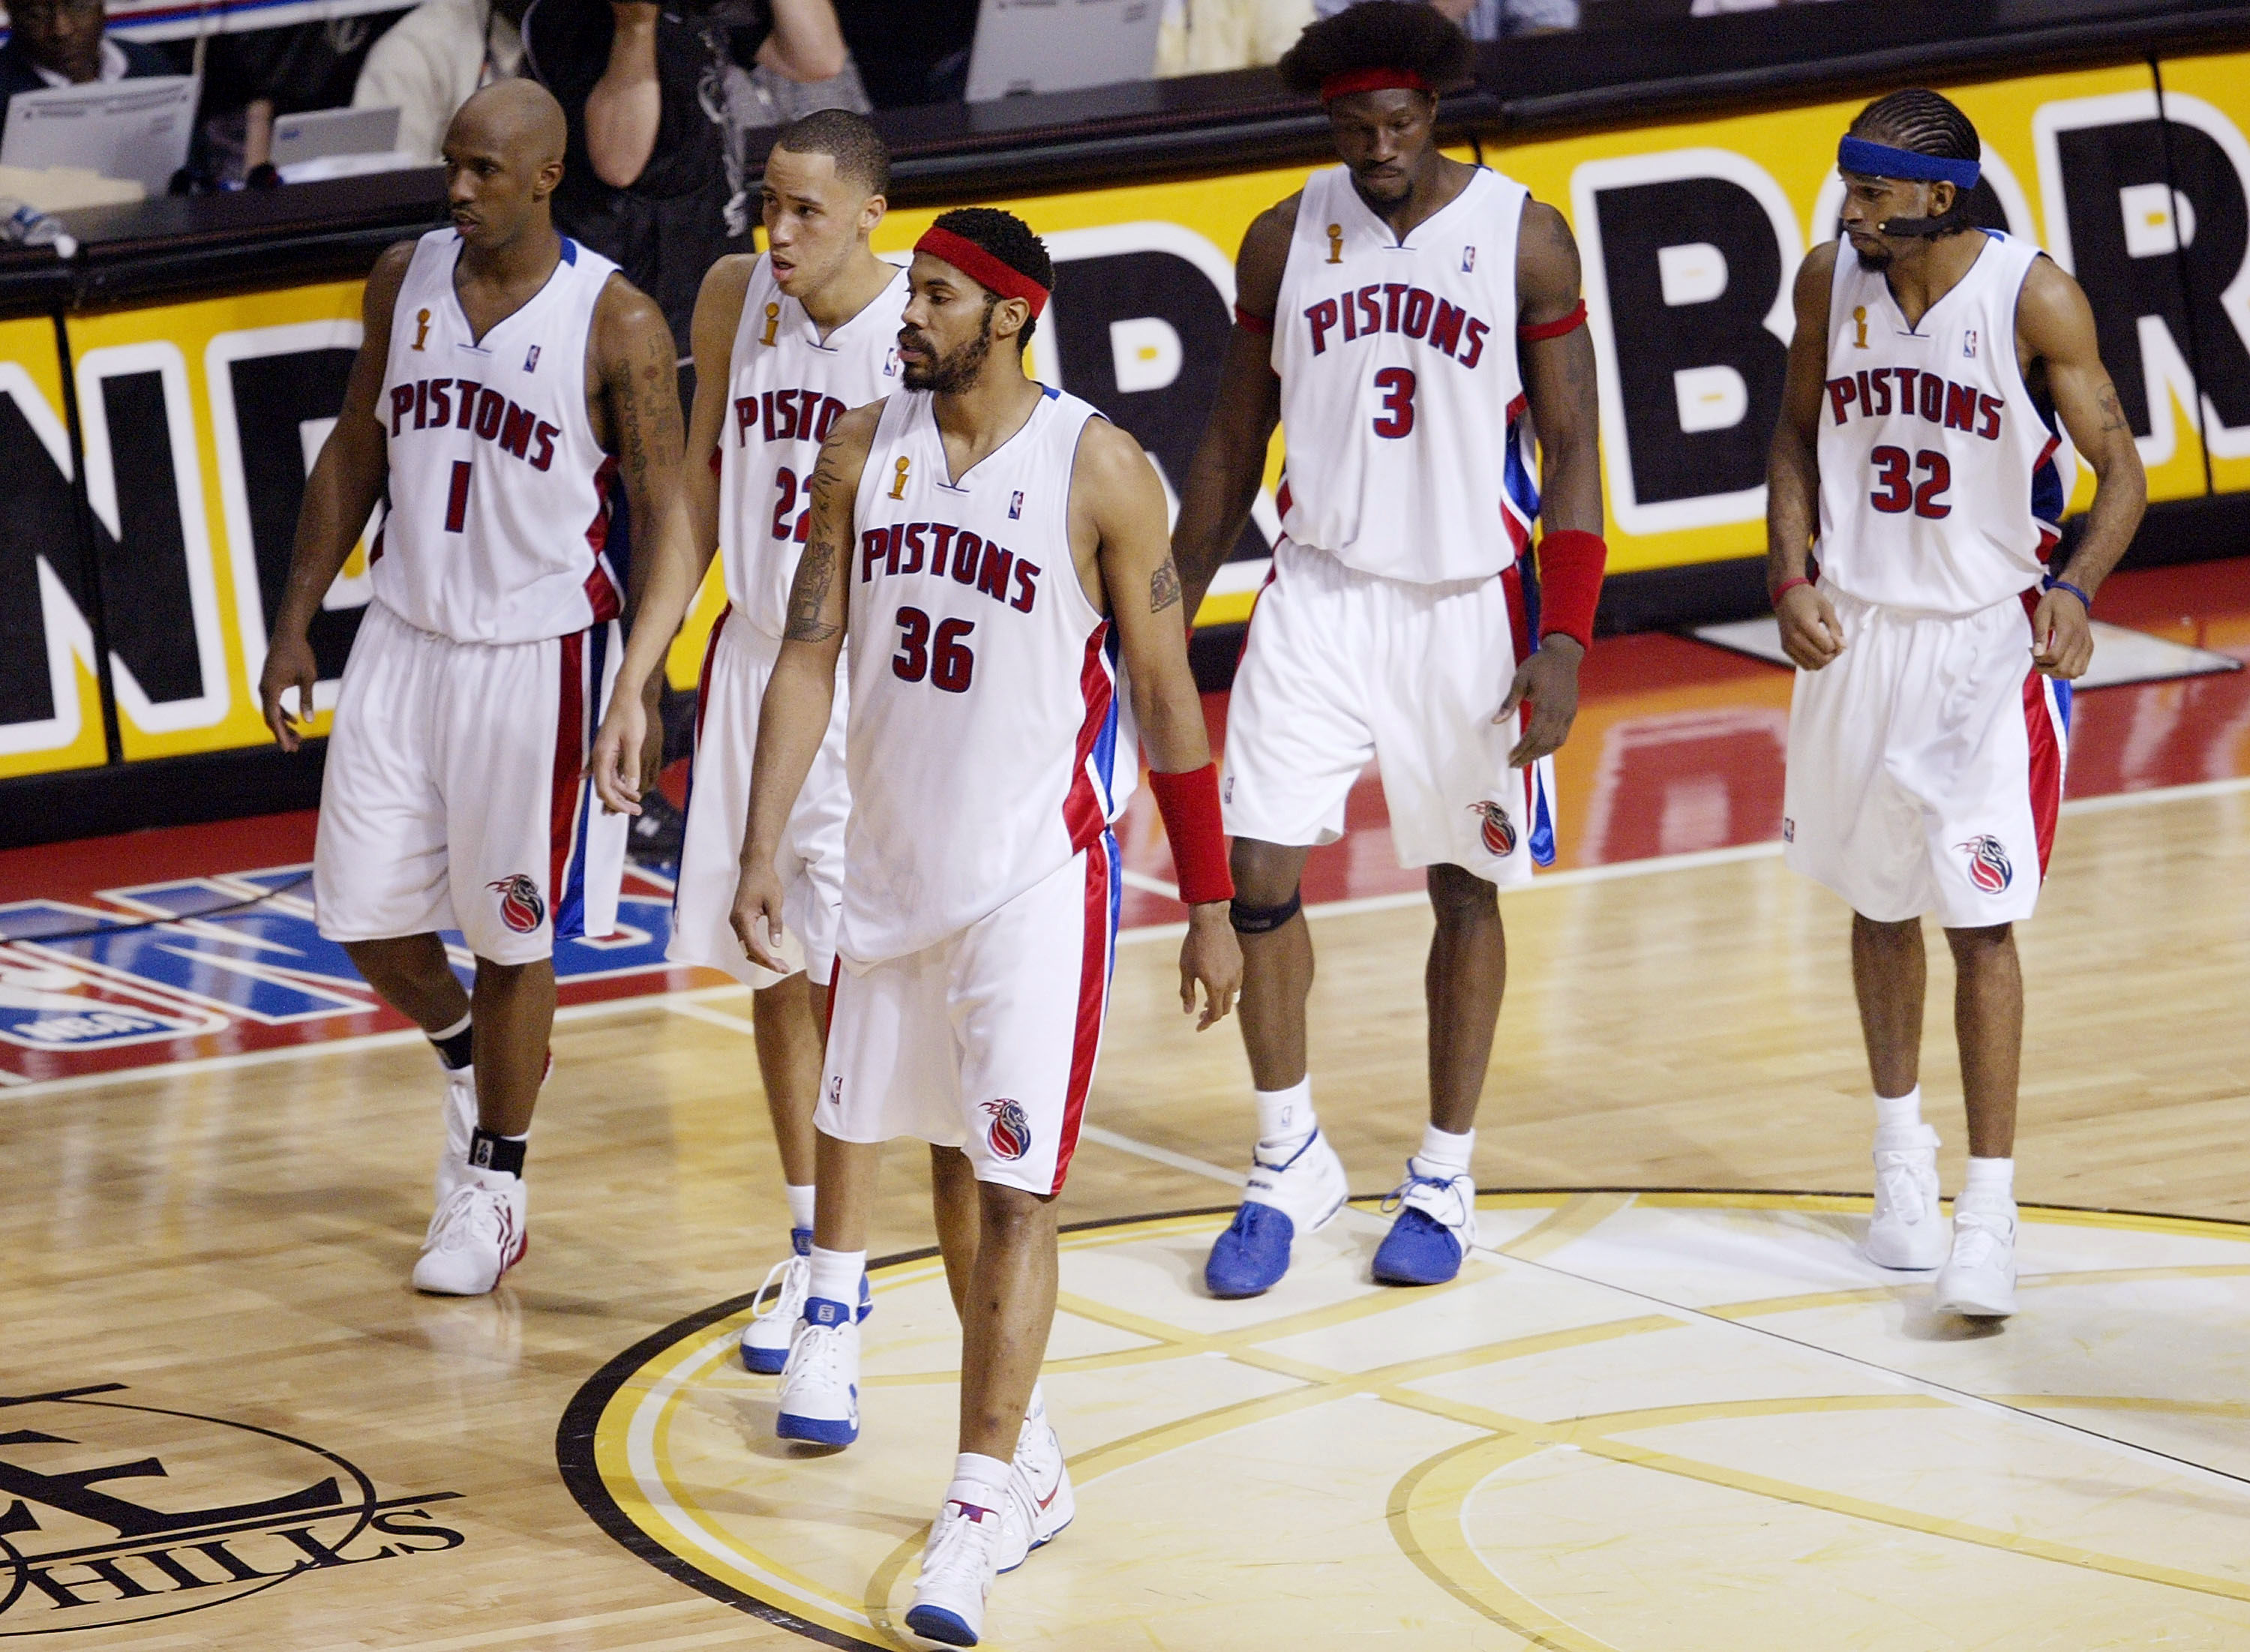 060413-sports-nba-all-time-finals-appearances-detroit-pistons